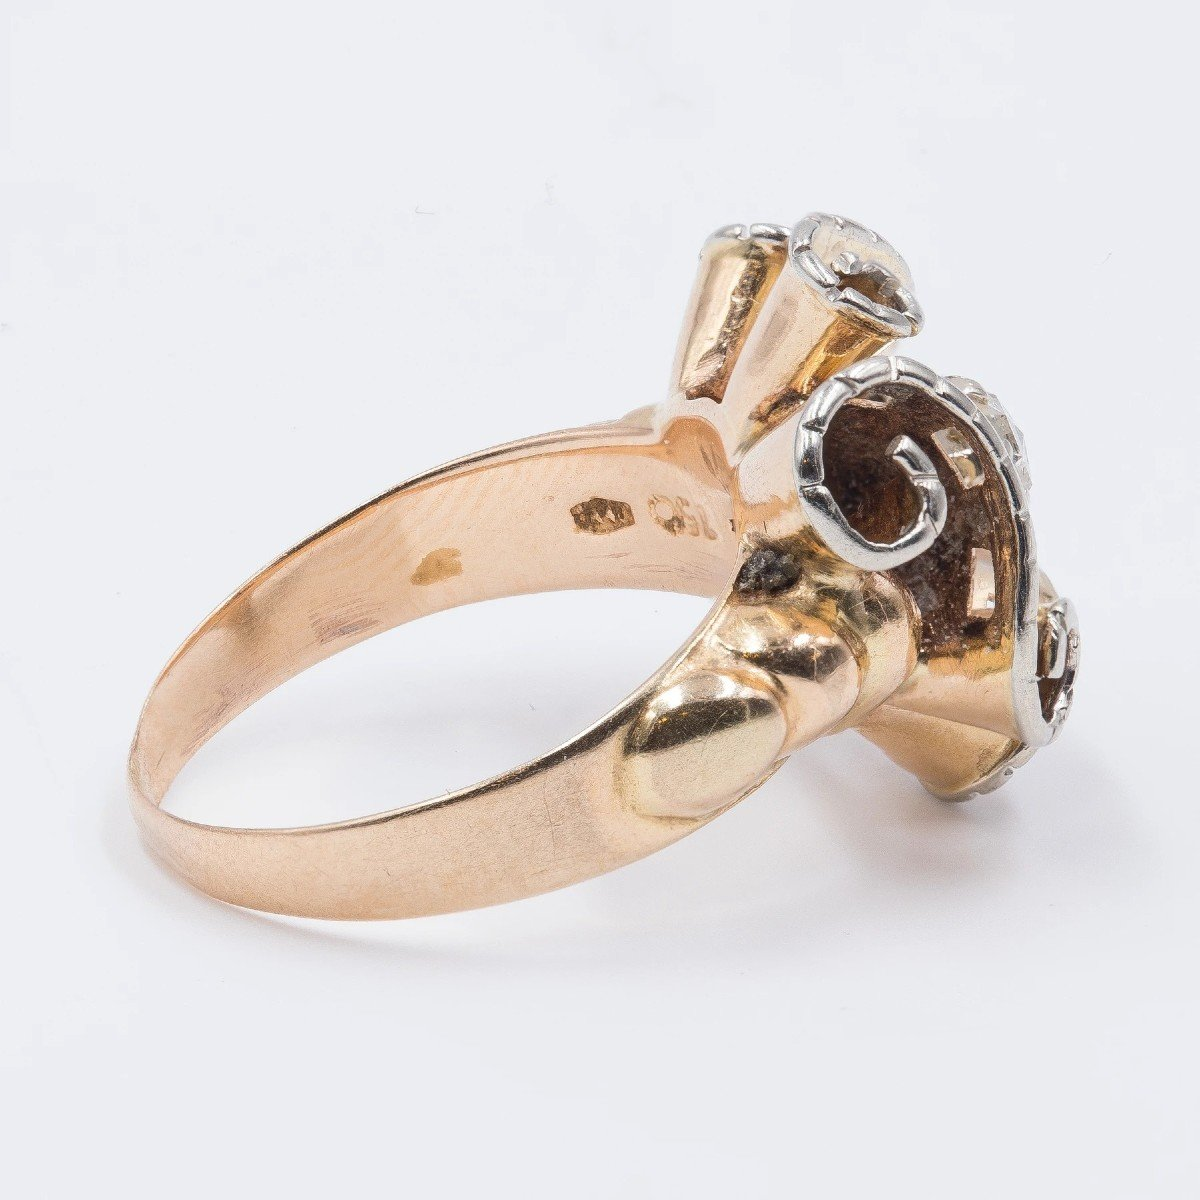 Vintage 18k Gold Ring With A Center Crowned Rose Cut Diamond